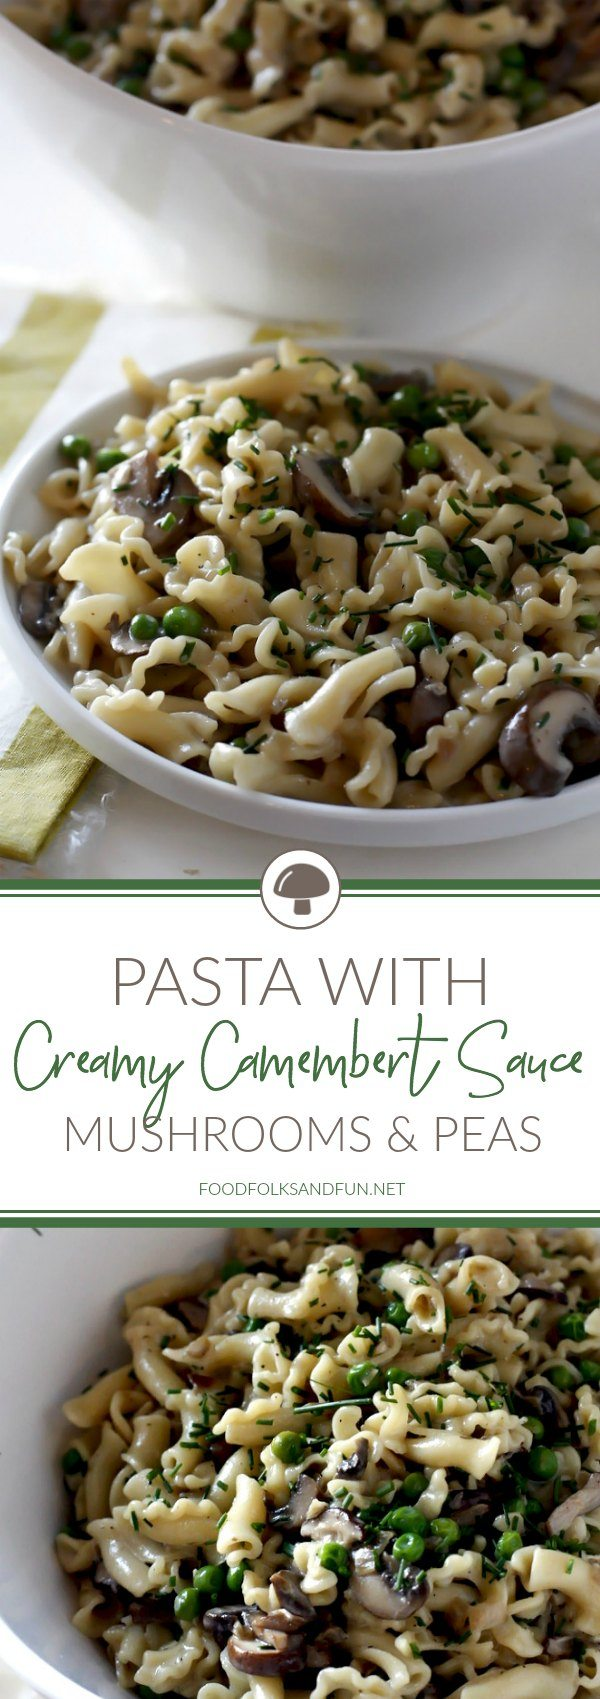 This Pasta with Mushrooms, Peas and Creamy Camembert Sauce recipe is a great meatless weeknight dinner that's rich and hearty tasting. The mushrooms give it a meaty flavor that is completely satisfying. via @foodfolksandfun